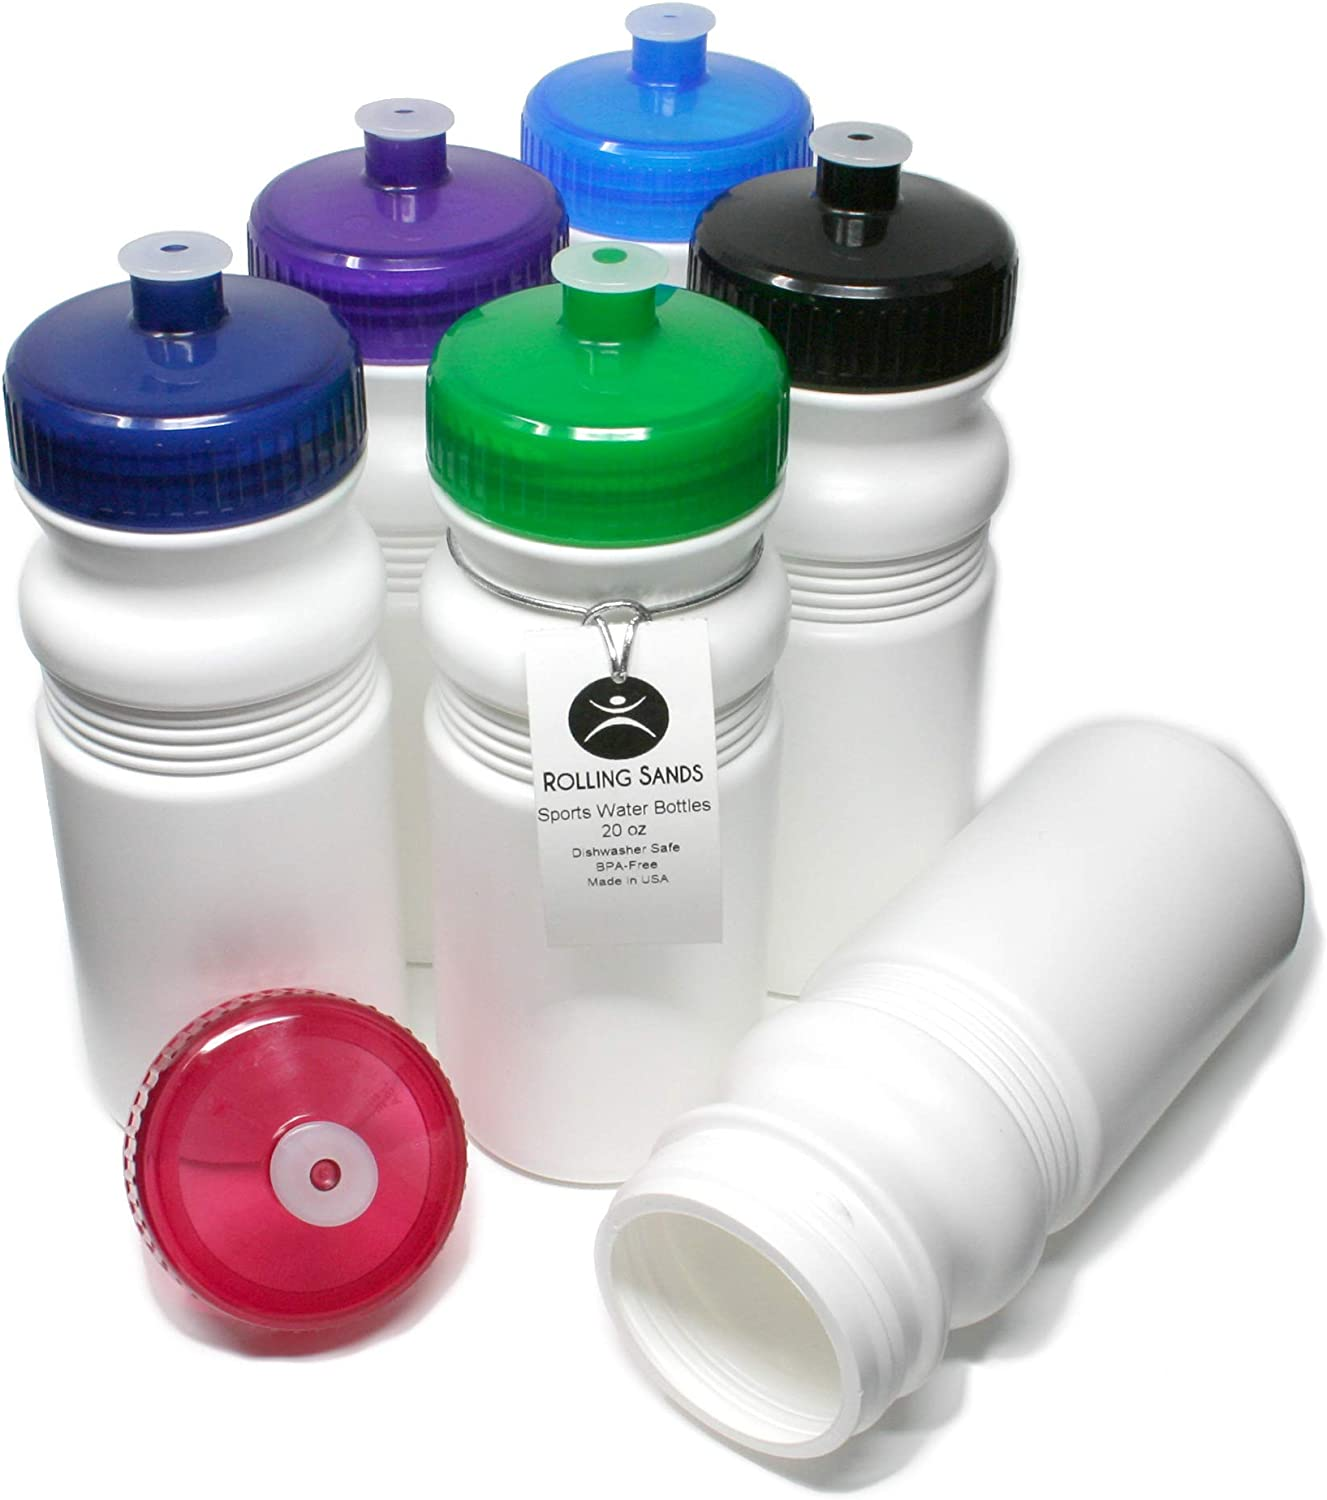 Rolling Sands 20 Ounce Sports Water Bottles 6 Pack, BPA-Free, Made in USA, Dishwasher Safe